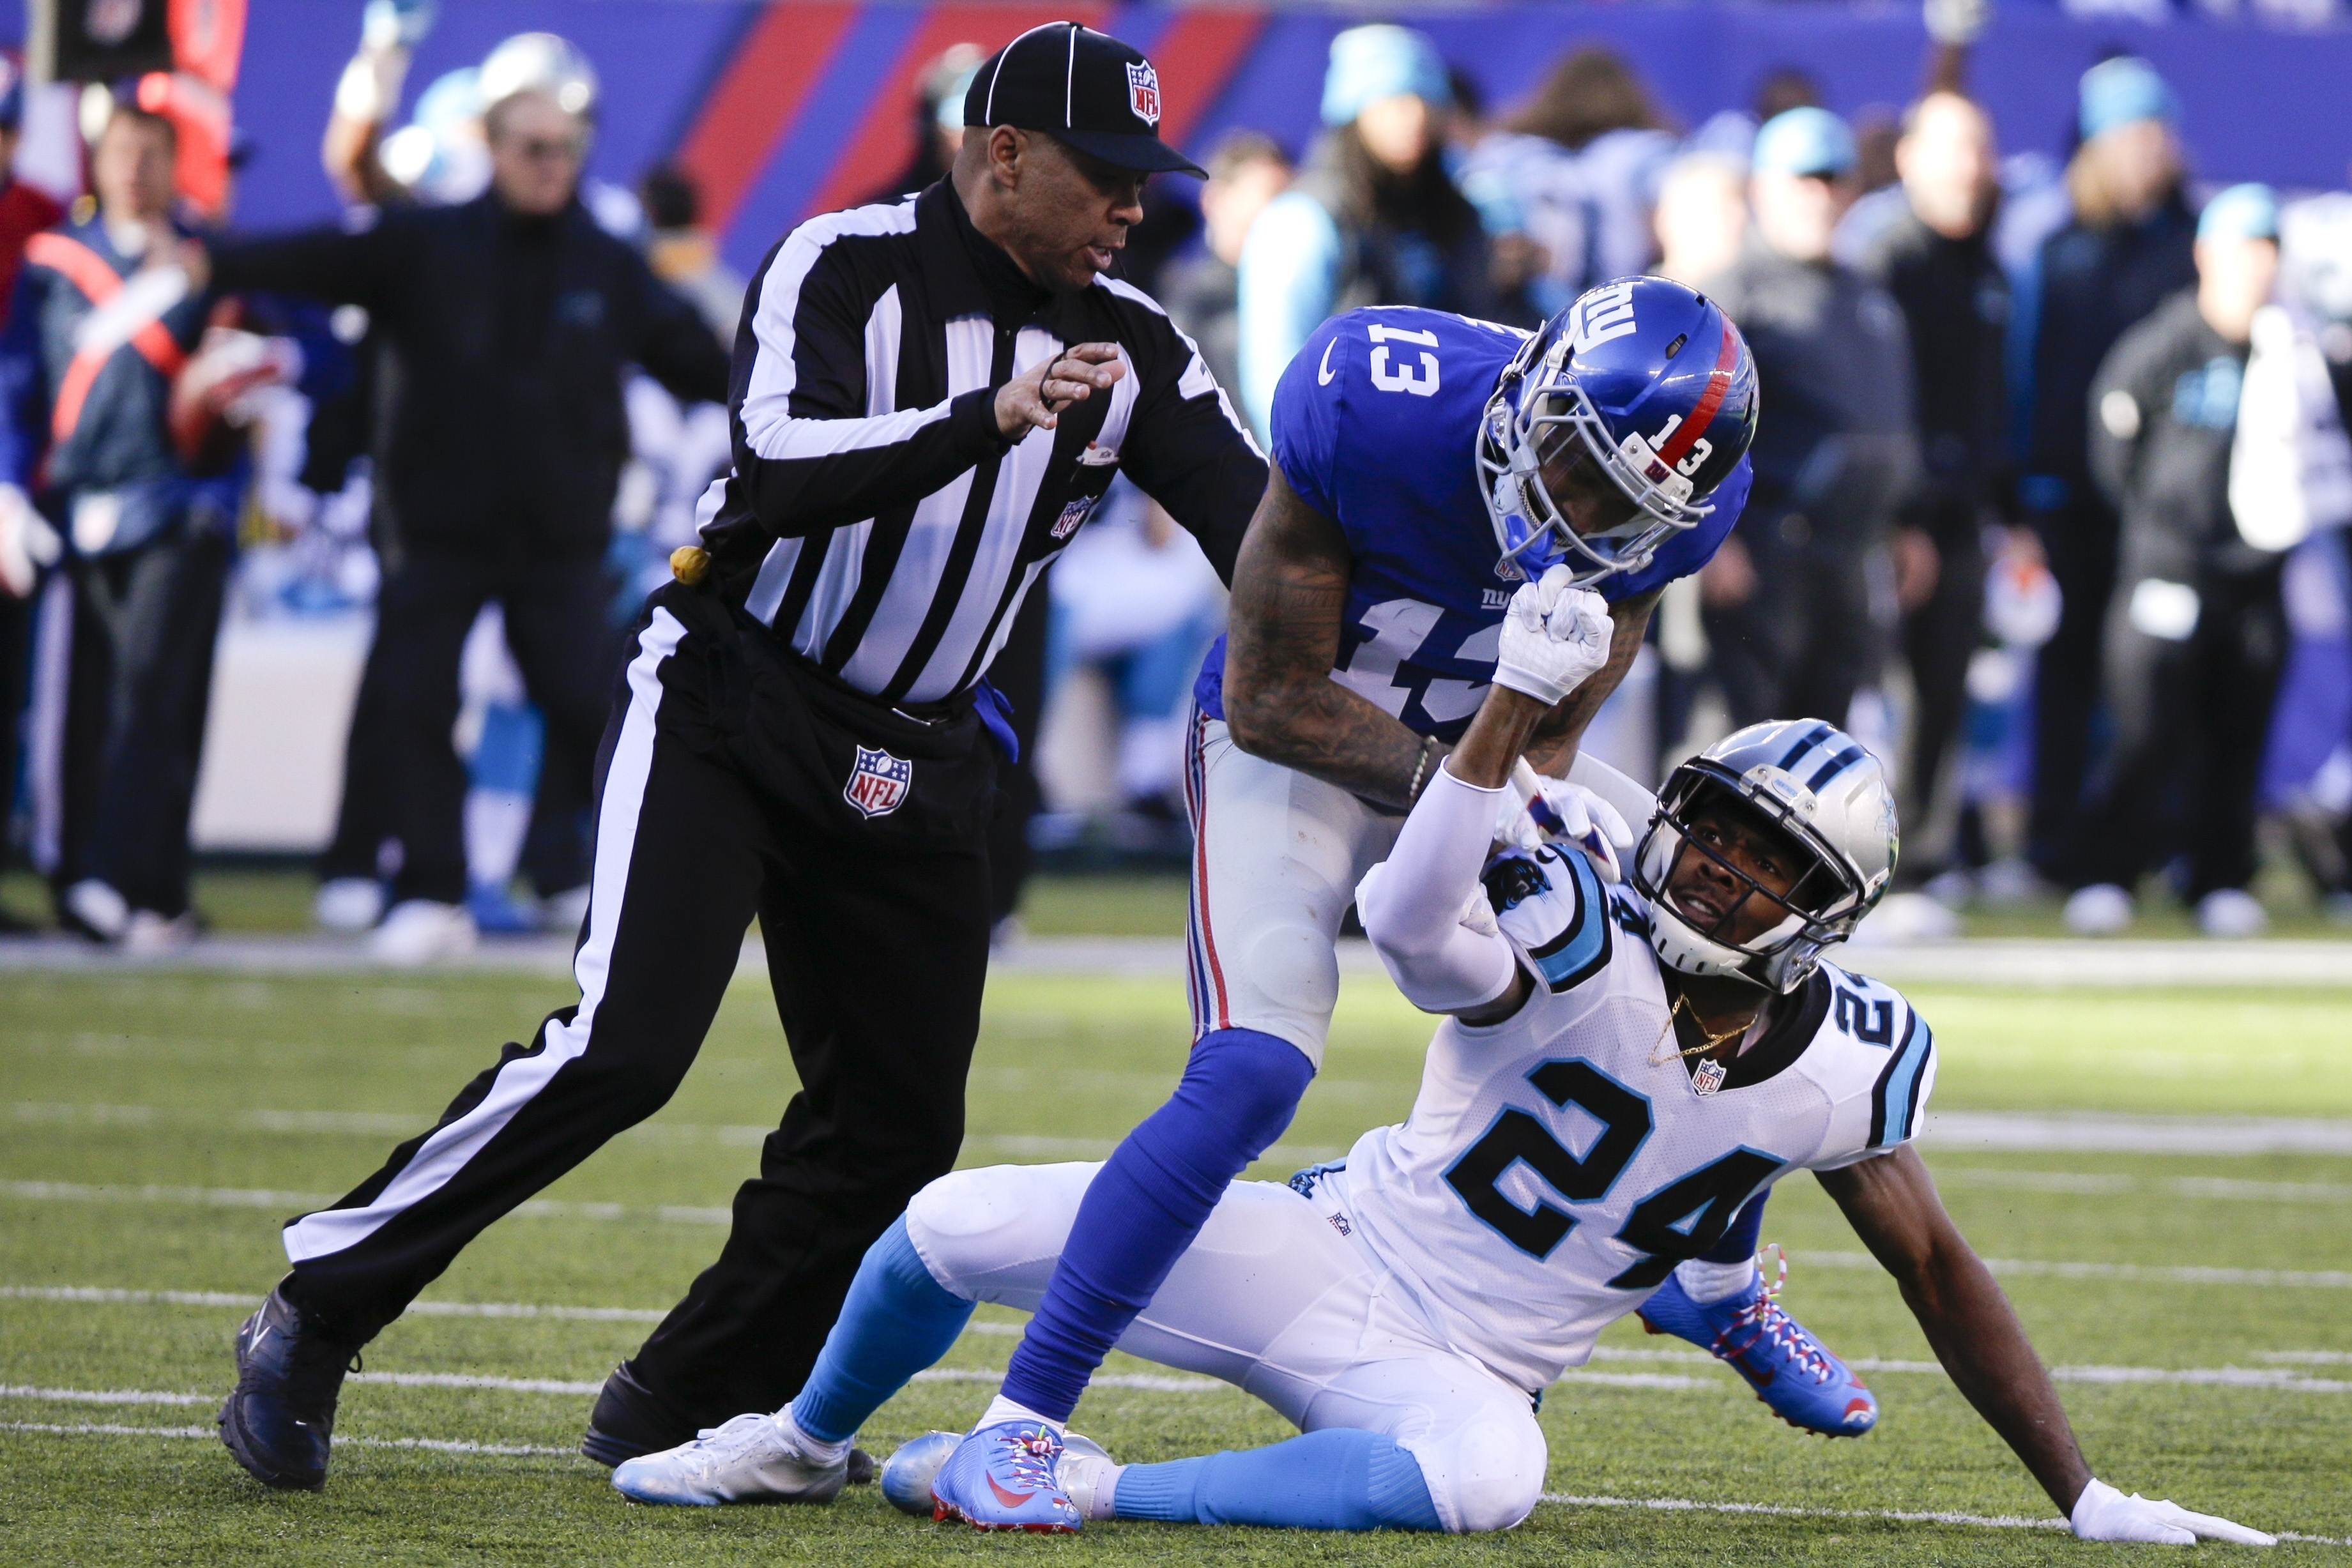 FILE - In this Dec. 20, 2015, file photo, a referee, left, separates New York Giants wide receiver Odell Beckham (13) and Carolina Panthers' Josh Norman (24) during the first half of an NFL football game Sunday, Dec. 20, 2015, in East Rutherford, N.J. Whe